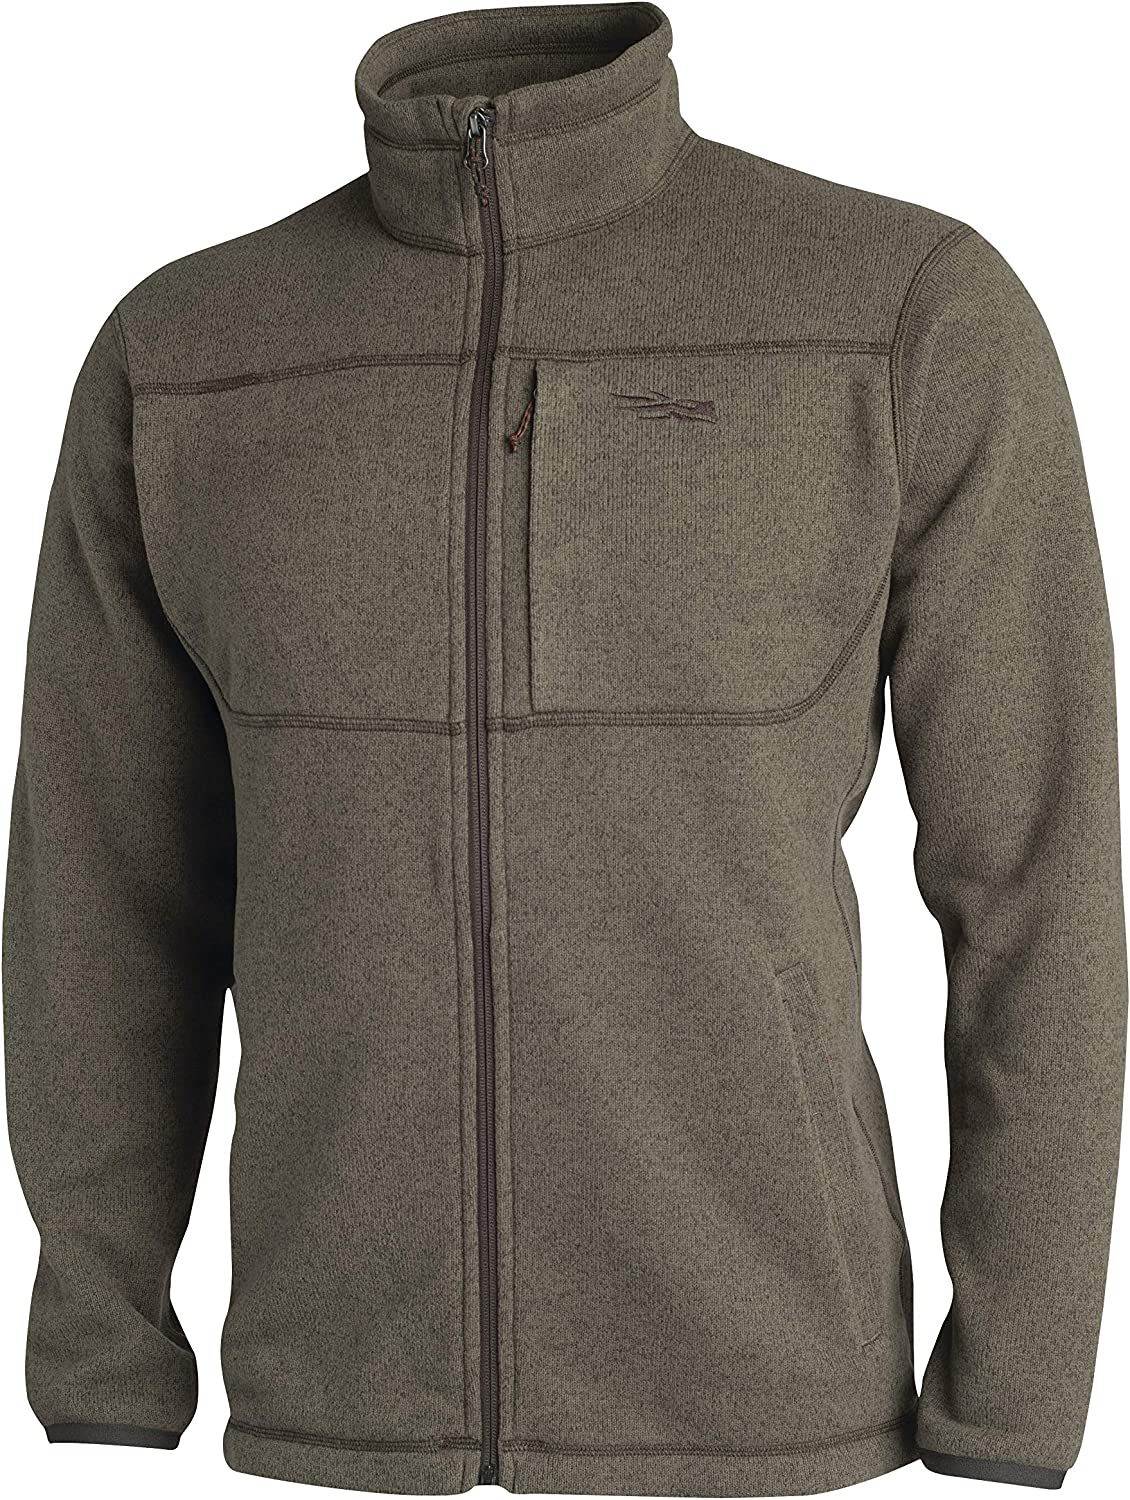 SITKA Gear Mens Fortitude Half-Zip Windproof Abrasion-Resistant Breathable Everyday Fleece Jacket Eclipse Small